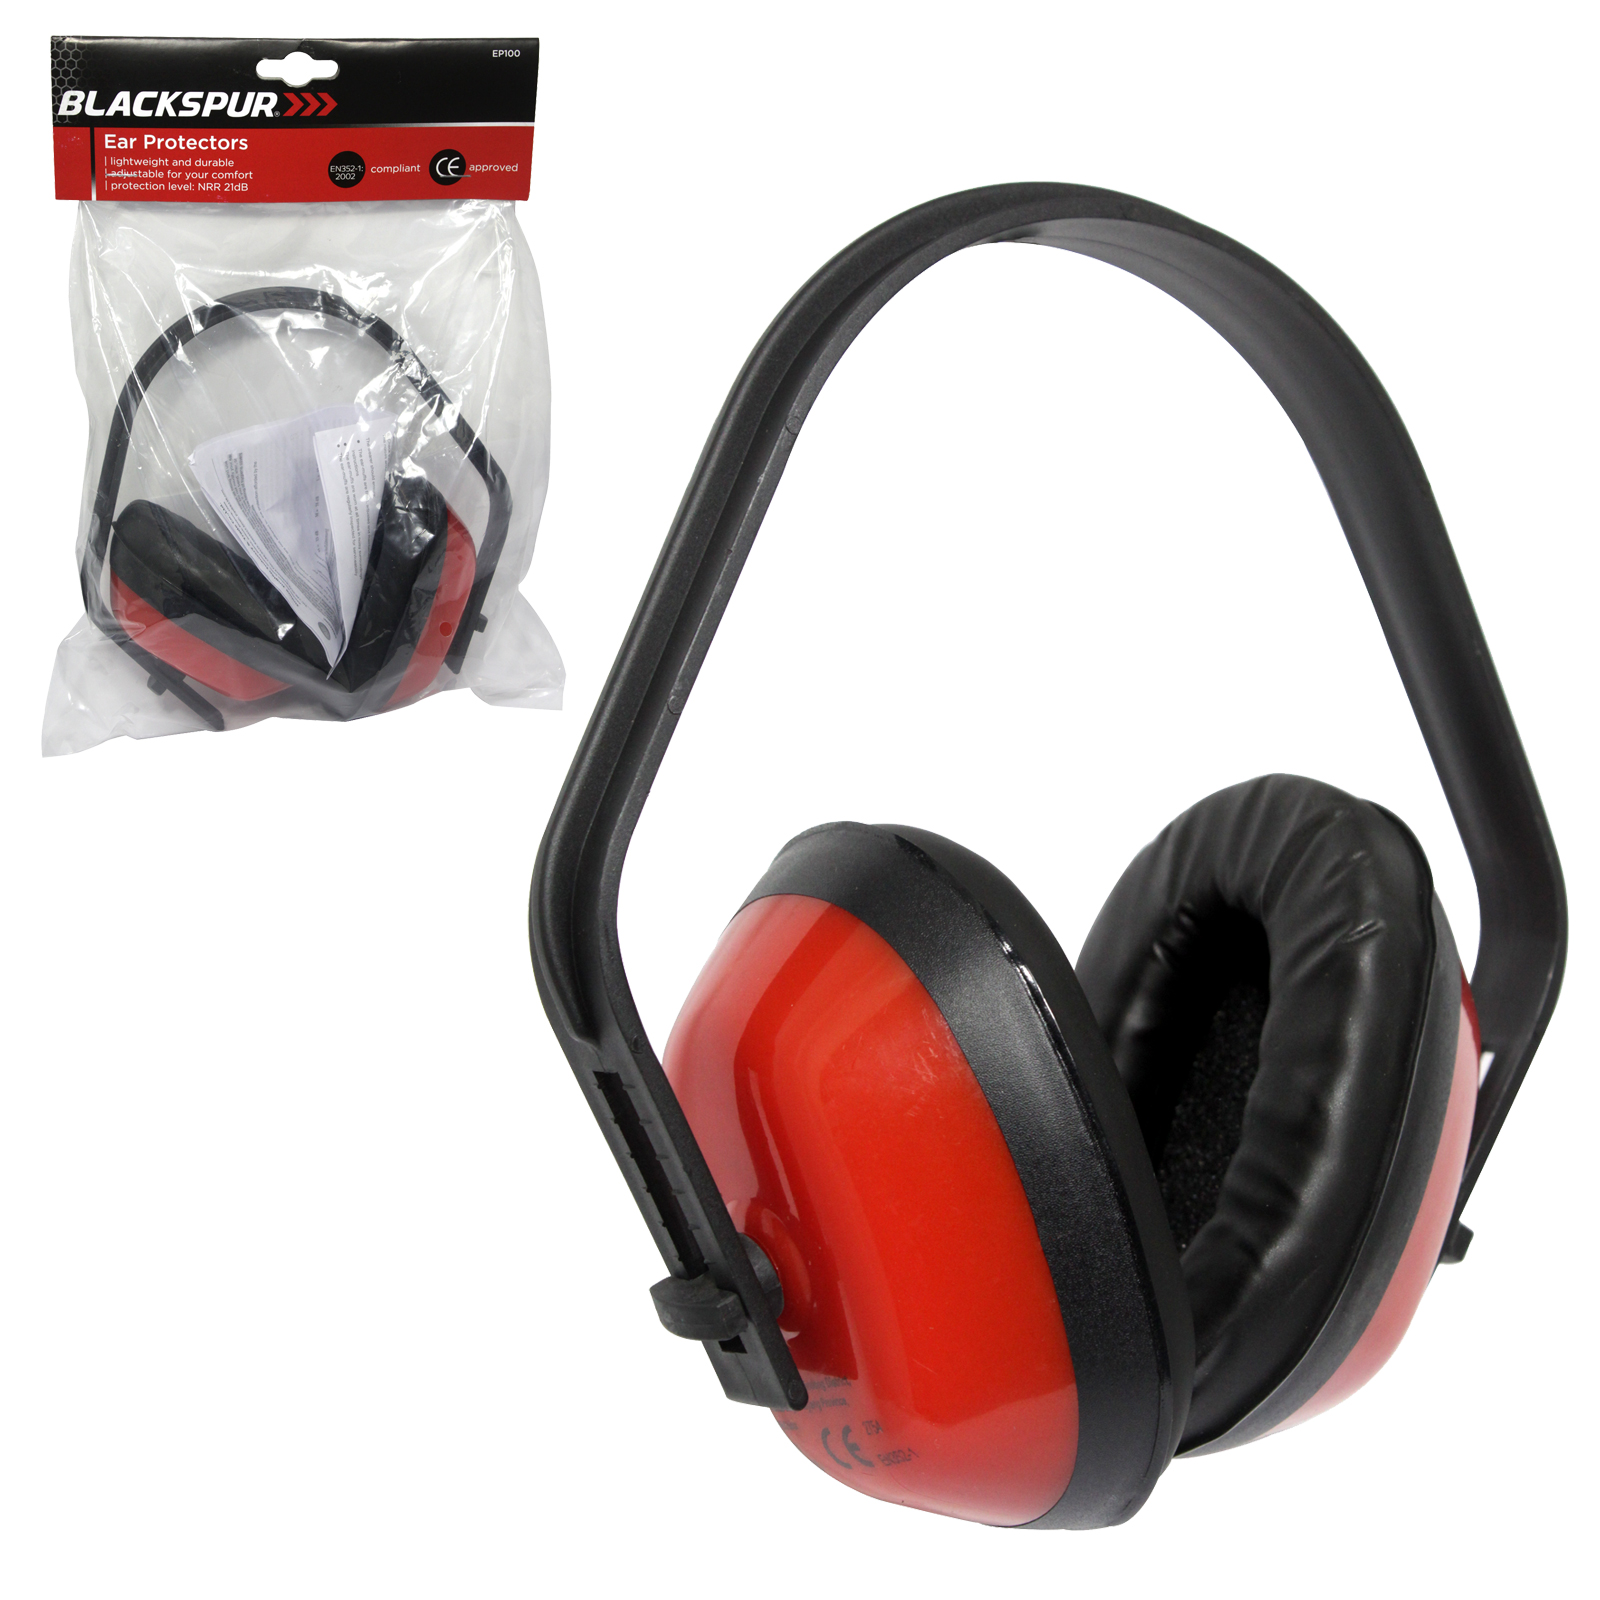 BLACKSPUR EAR PROTECTORS CE APPROVED